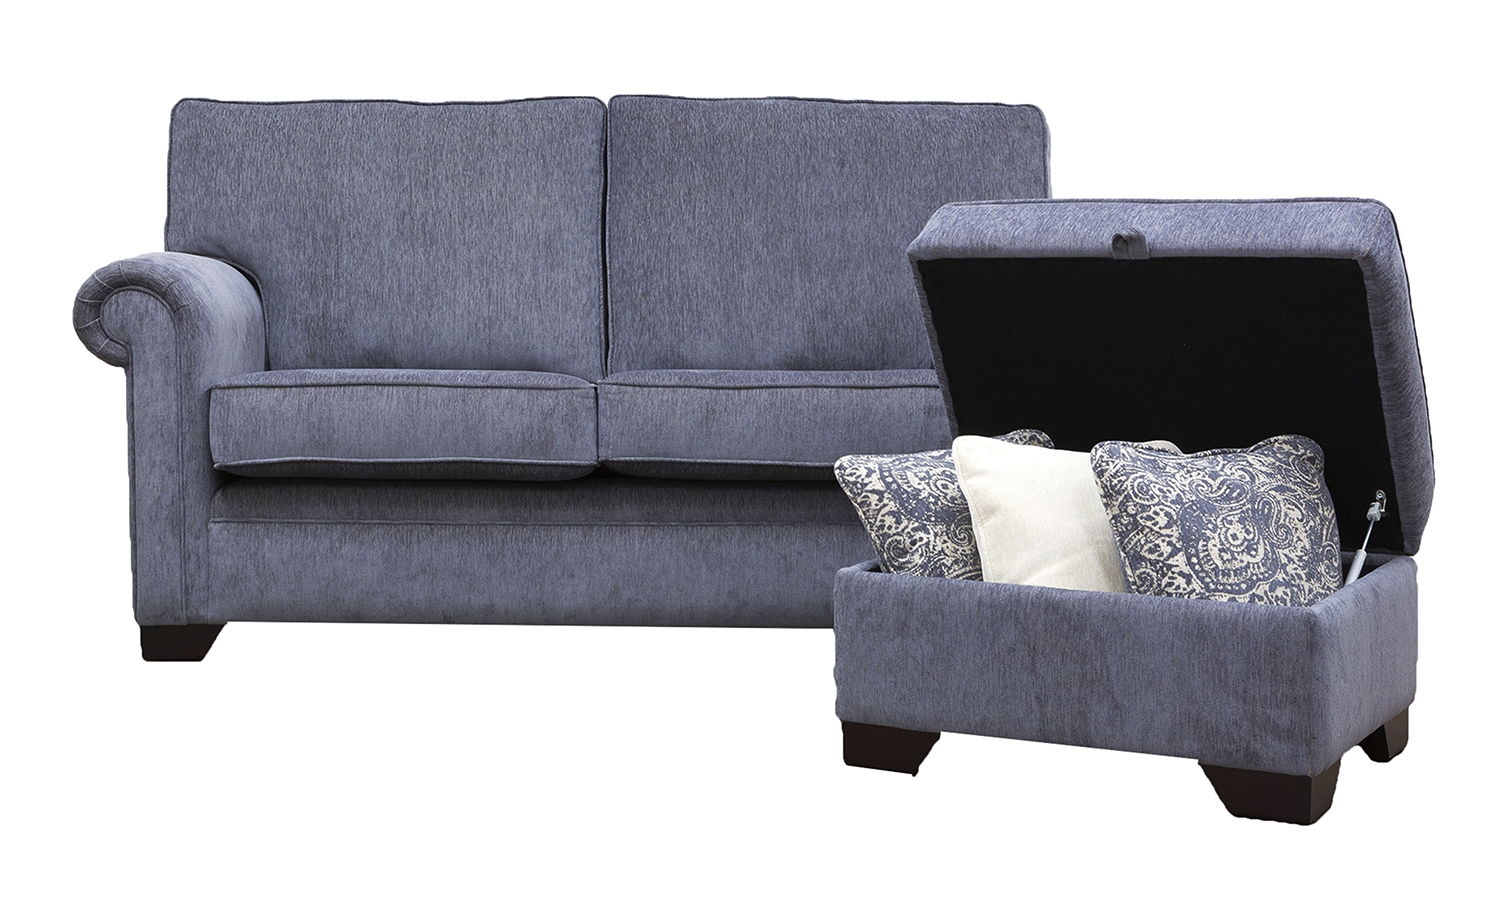 Small Space Choose Our Bespoke Option Finline Furniture Blog Inside Bespoke Corner Sofa Beds (Image 14 of 15)